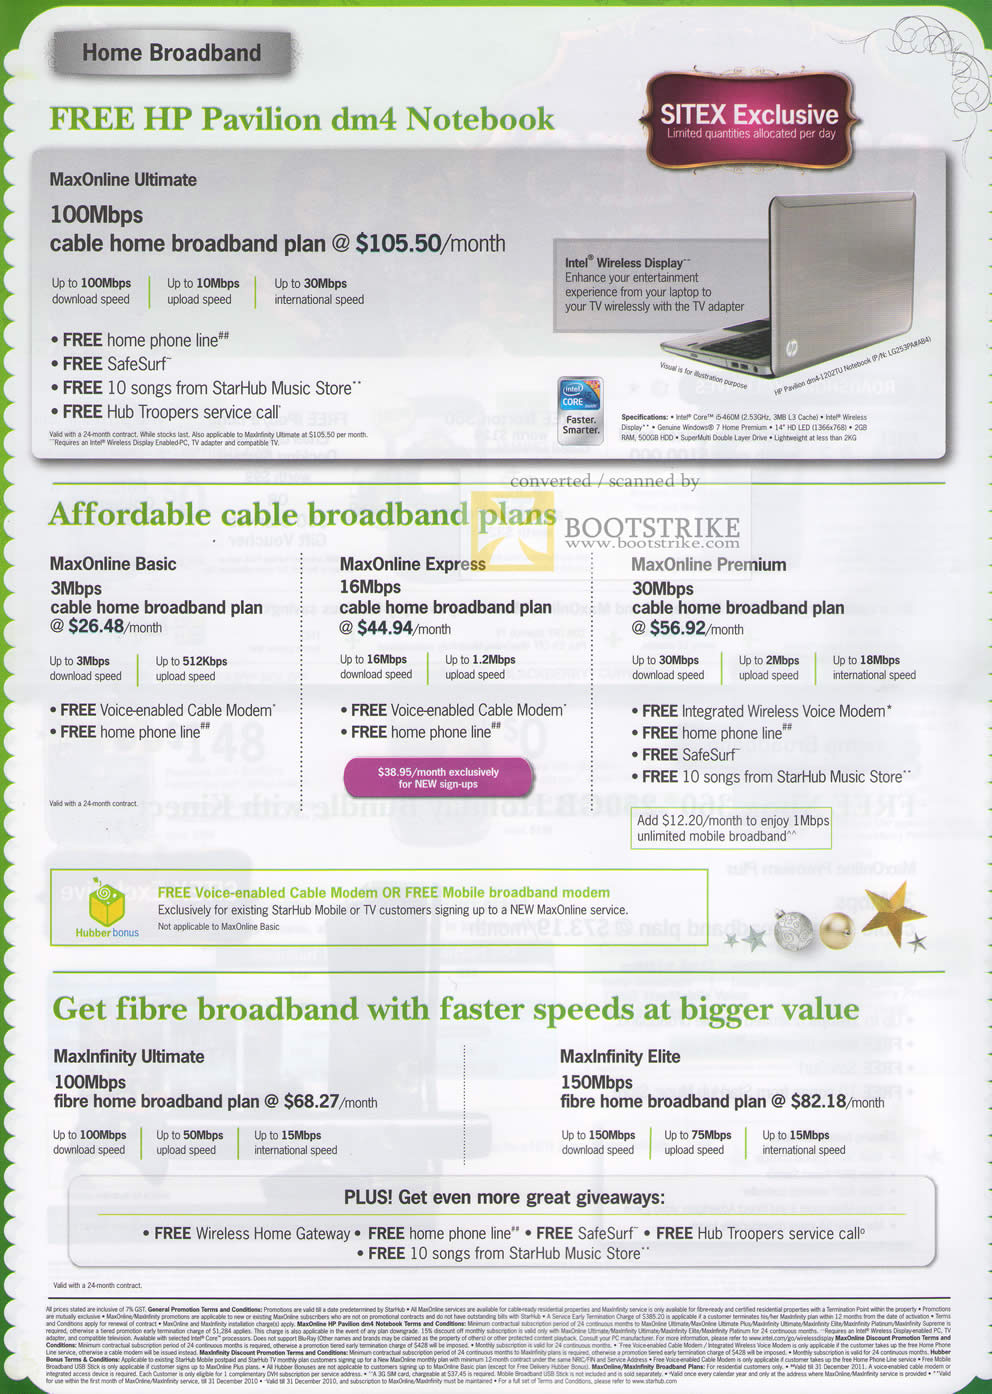 Sitex 2010 price list image brochure of Starhub HP Pavilion DM4 Notebook Maxonline Ultimate Express Basic Premium Fibre MaxInfinity Elite